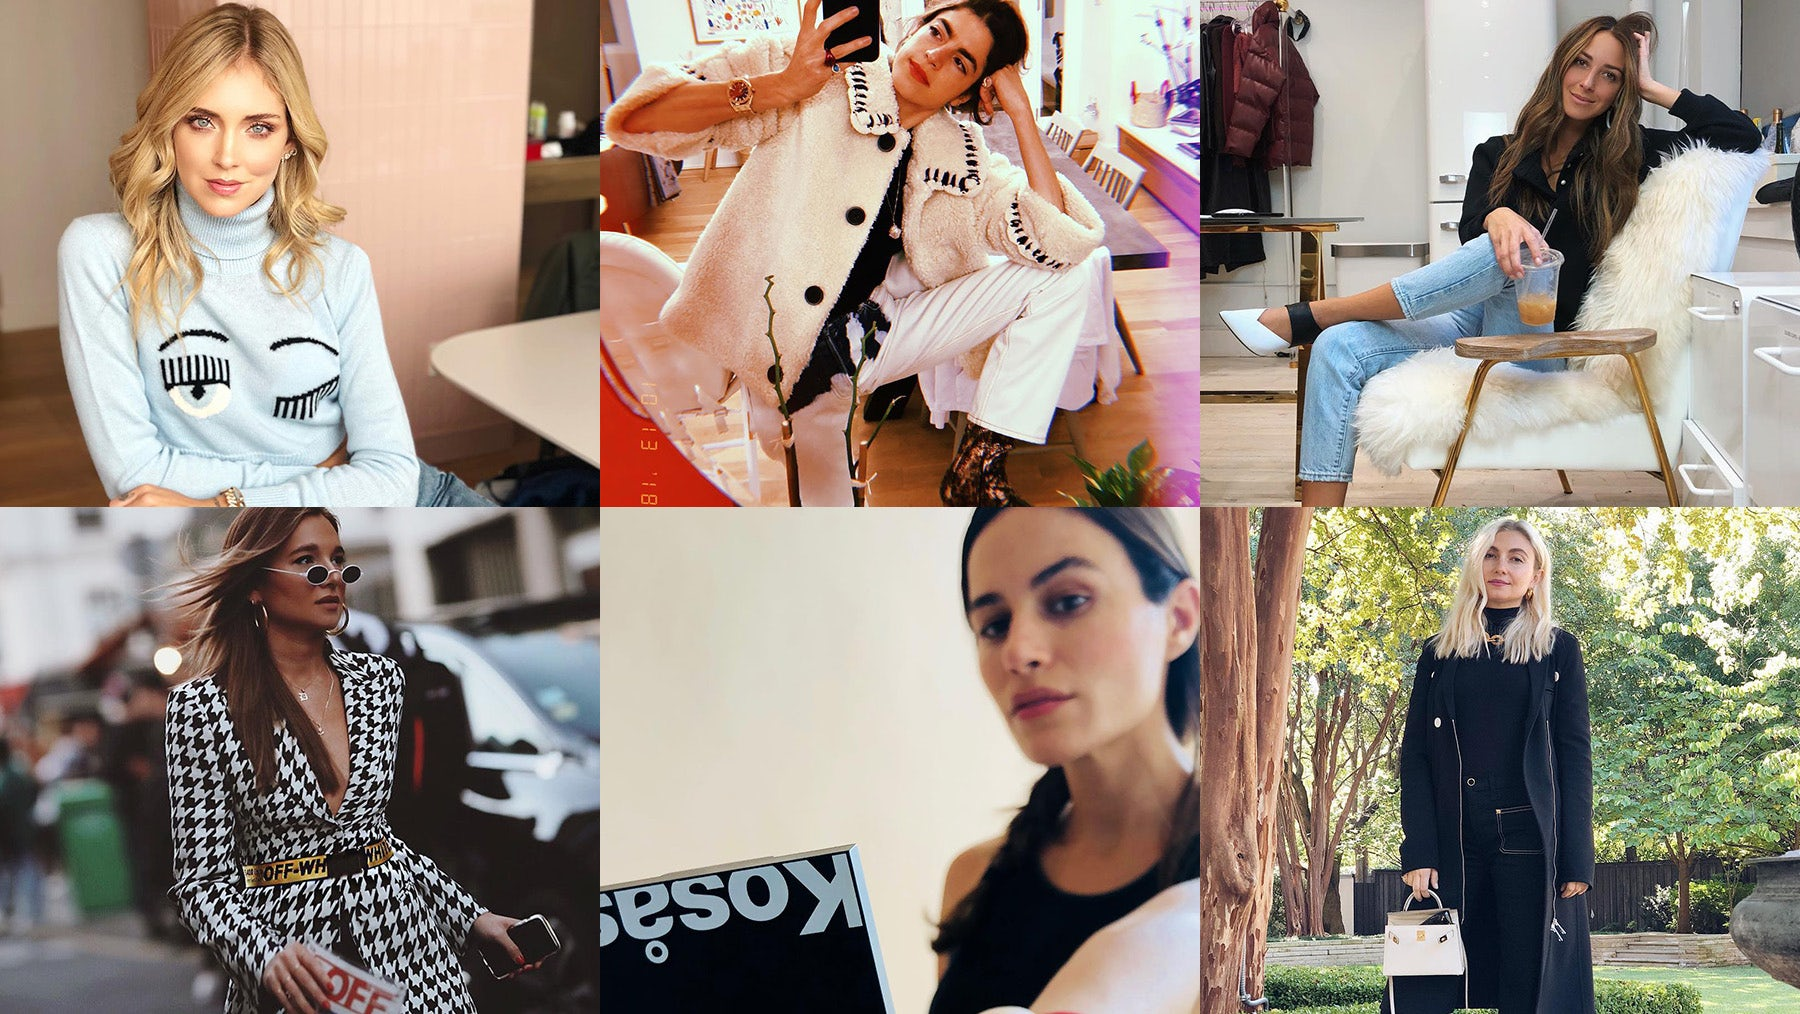 Image sources, clockwise from top left: @chiaraferragni, @leandramcohen, @ariellecharnas, @naseebs, @sheenayaitanes and @leandramcohen